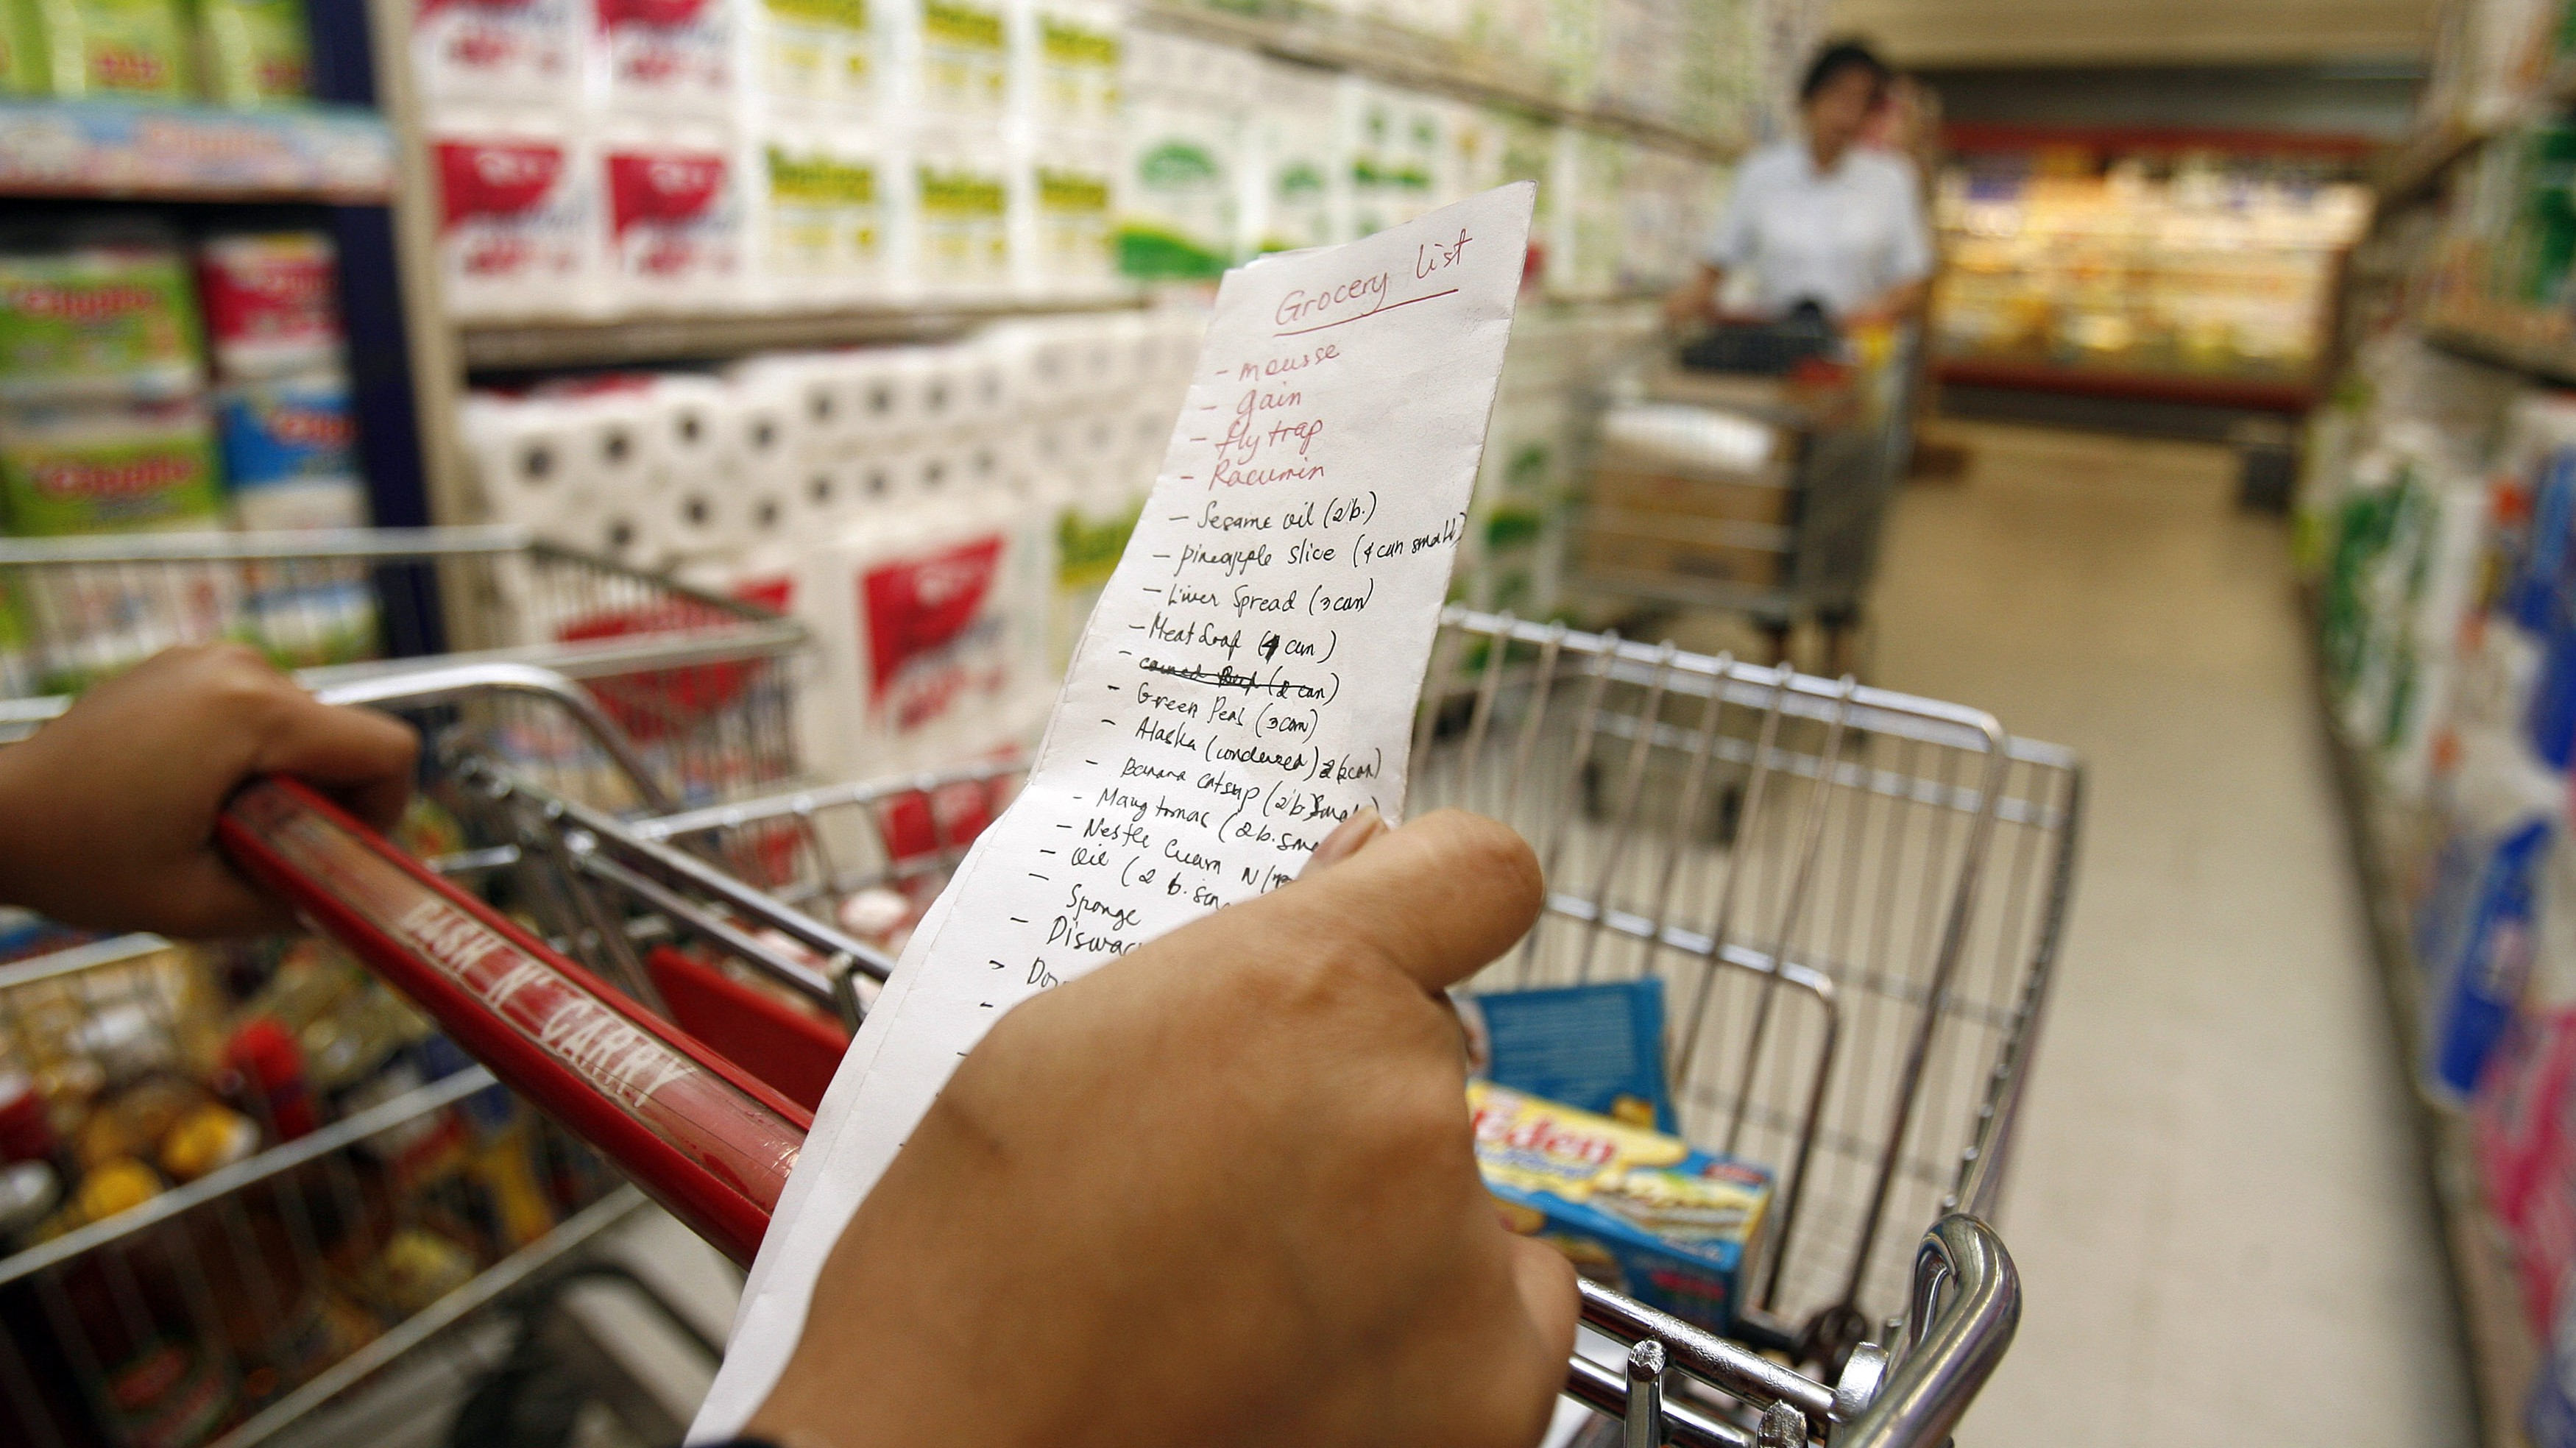 A customer holds a grocery list as she shops at a supermarket in Manila's Makati financial district October 16, 2008. REUTERS/Cheryl Ravelo (PHILIPPINES) - RTX9RJU